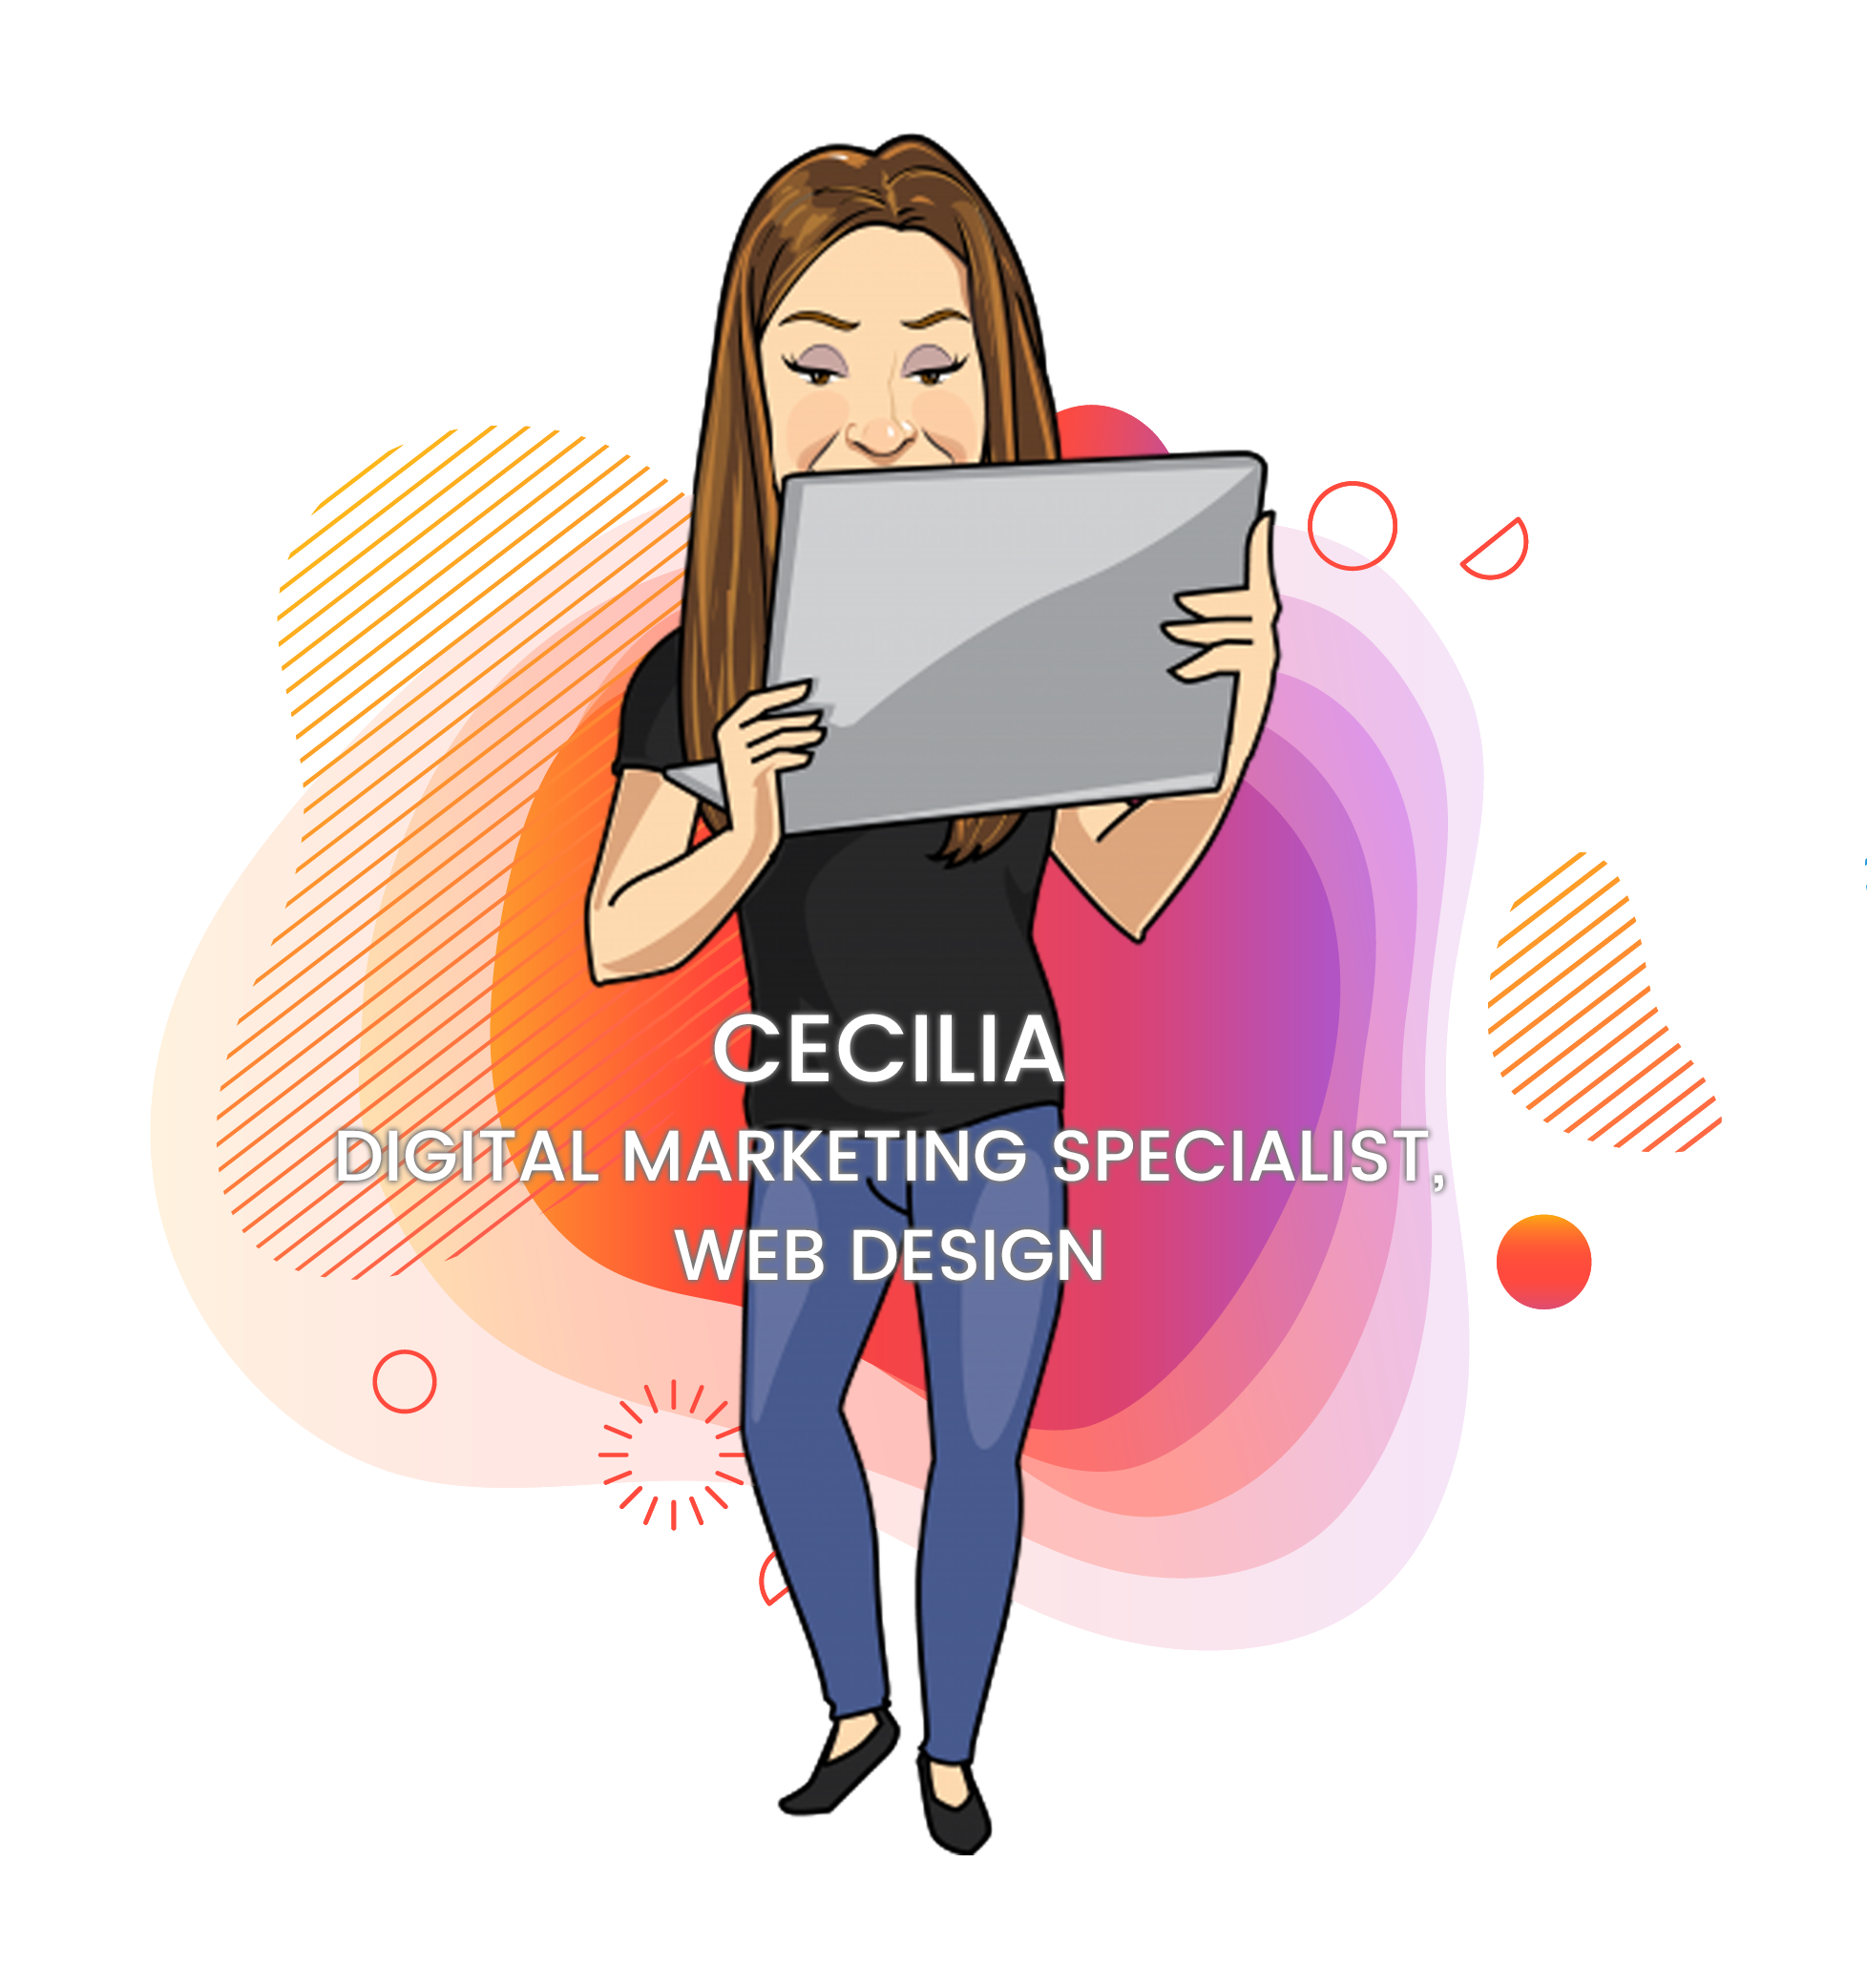 Cecilia, Digital Marketing Specialist, Web Design